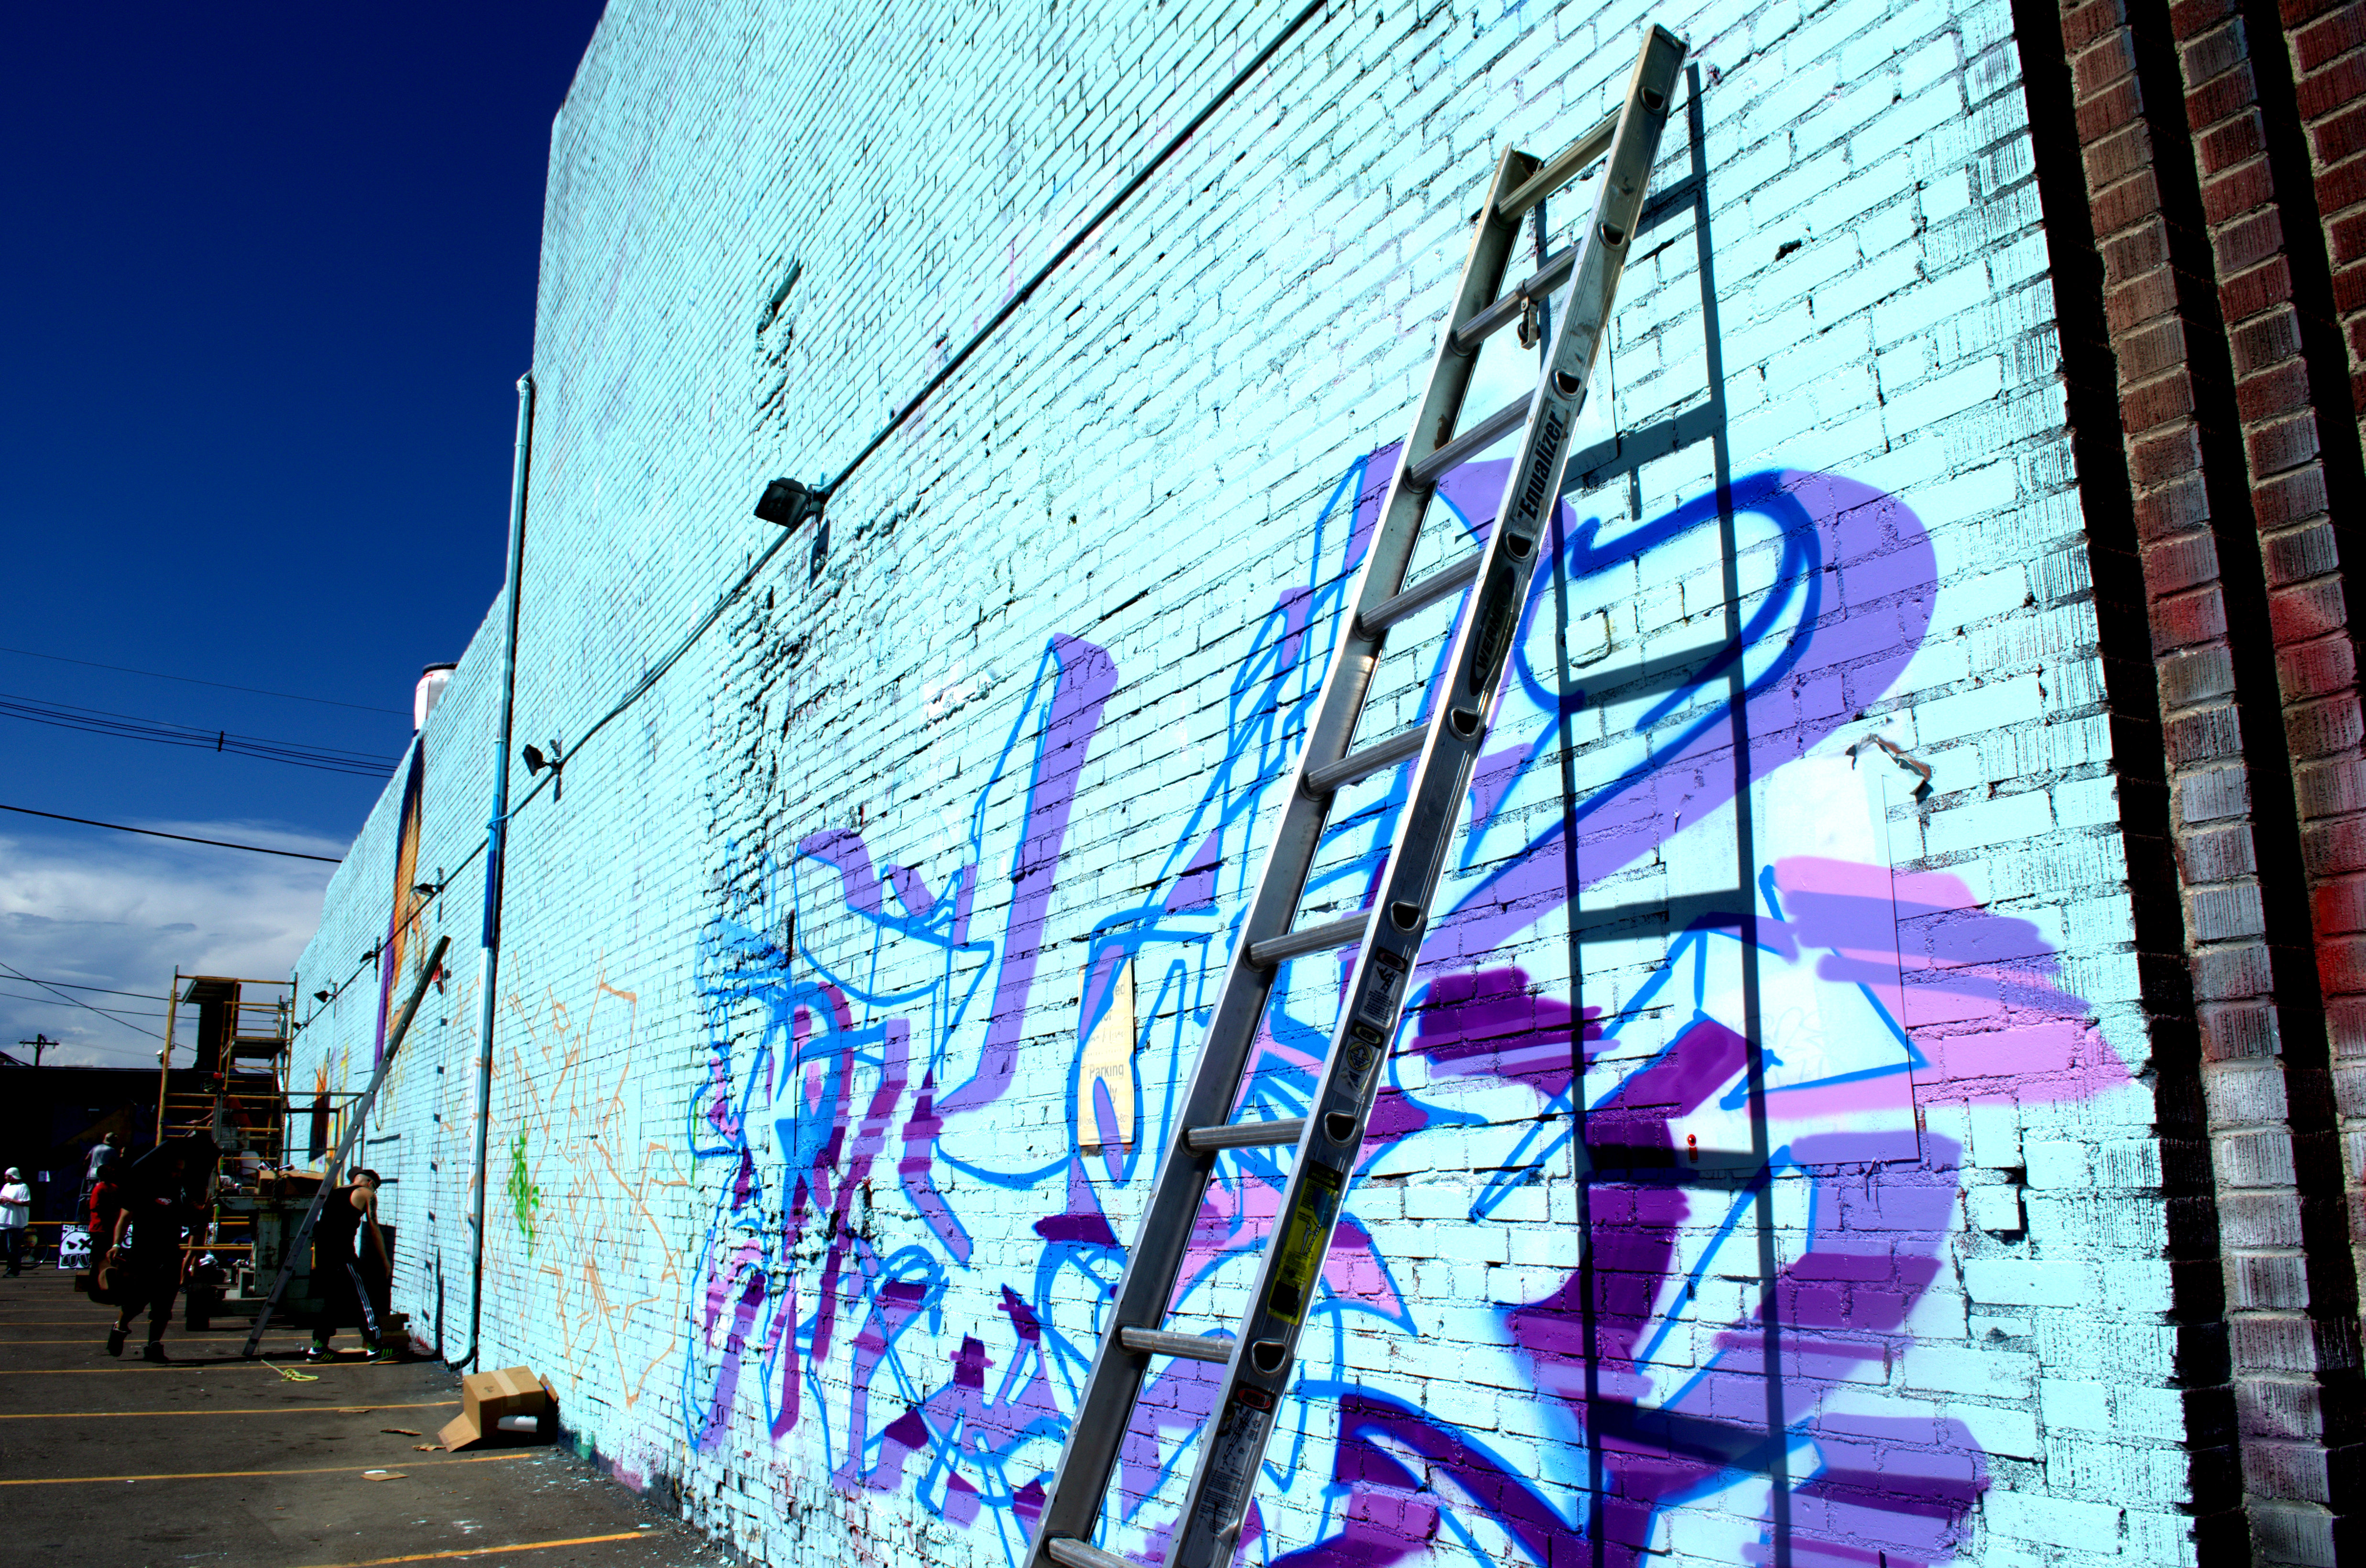 Colorado Crush 2013 mural by Tats Cru artists BG183 and Totem2 (from right to left)